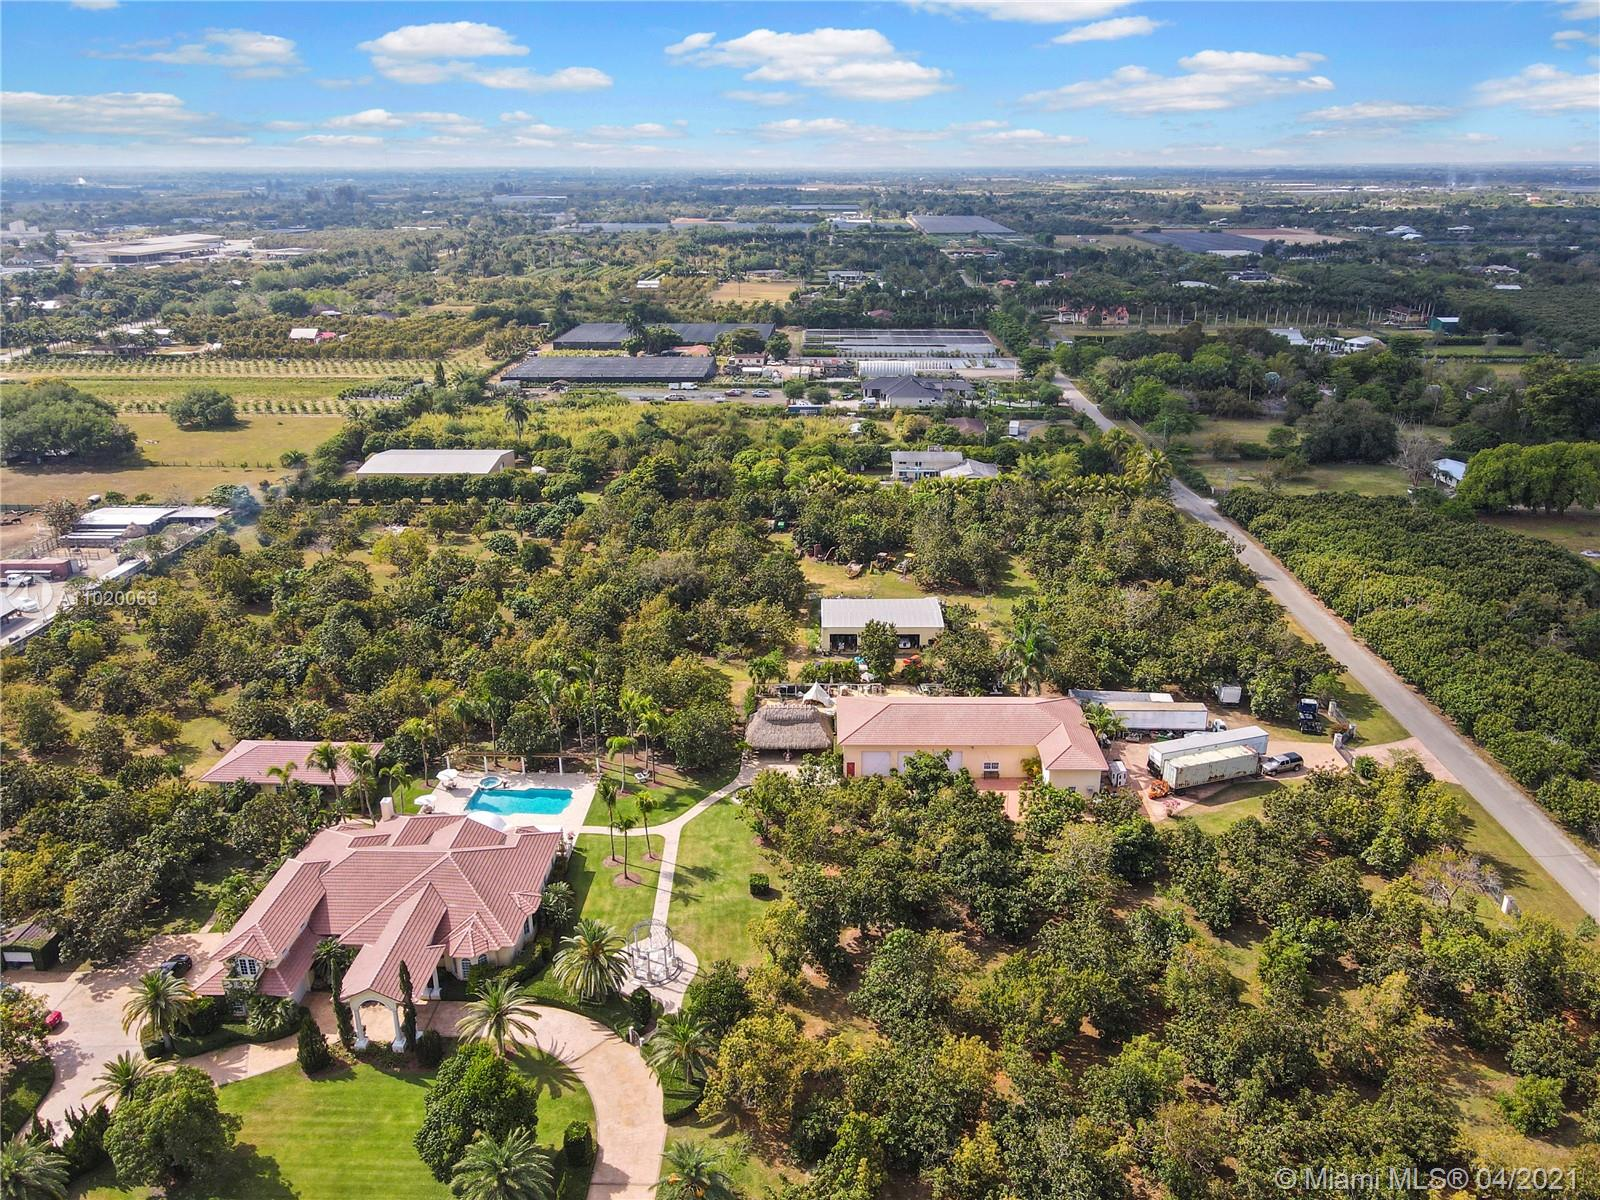 WHAT A SET UP. MAIN UP FRONT, THE GUEST IS OFF THE OVERSIZED POOL W PERGOLA AND SPA ON A LARGE PATIO ,TIKI IS NEXT TO CUSTOM GARAGE/WORKSHOP15+ CARS W OFFICE, EQUIPMENT SHED IN REAR . MULTIPLE ENTRANCES  WITH WALKWAYS  SITTING AREAS/LAWN ART THRU OUT...SURROUNDED BY INCOME GROVE